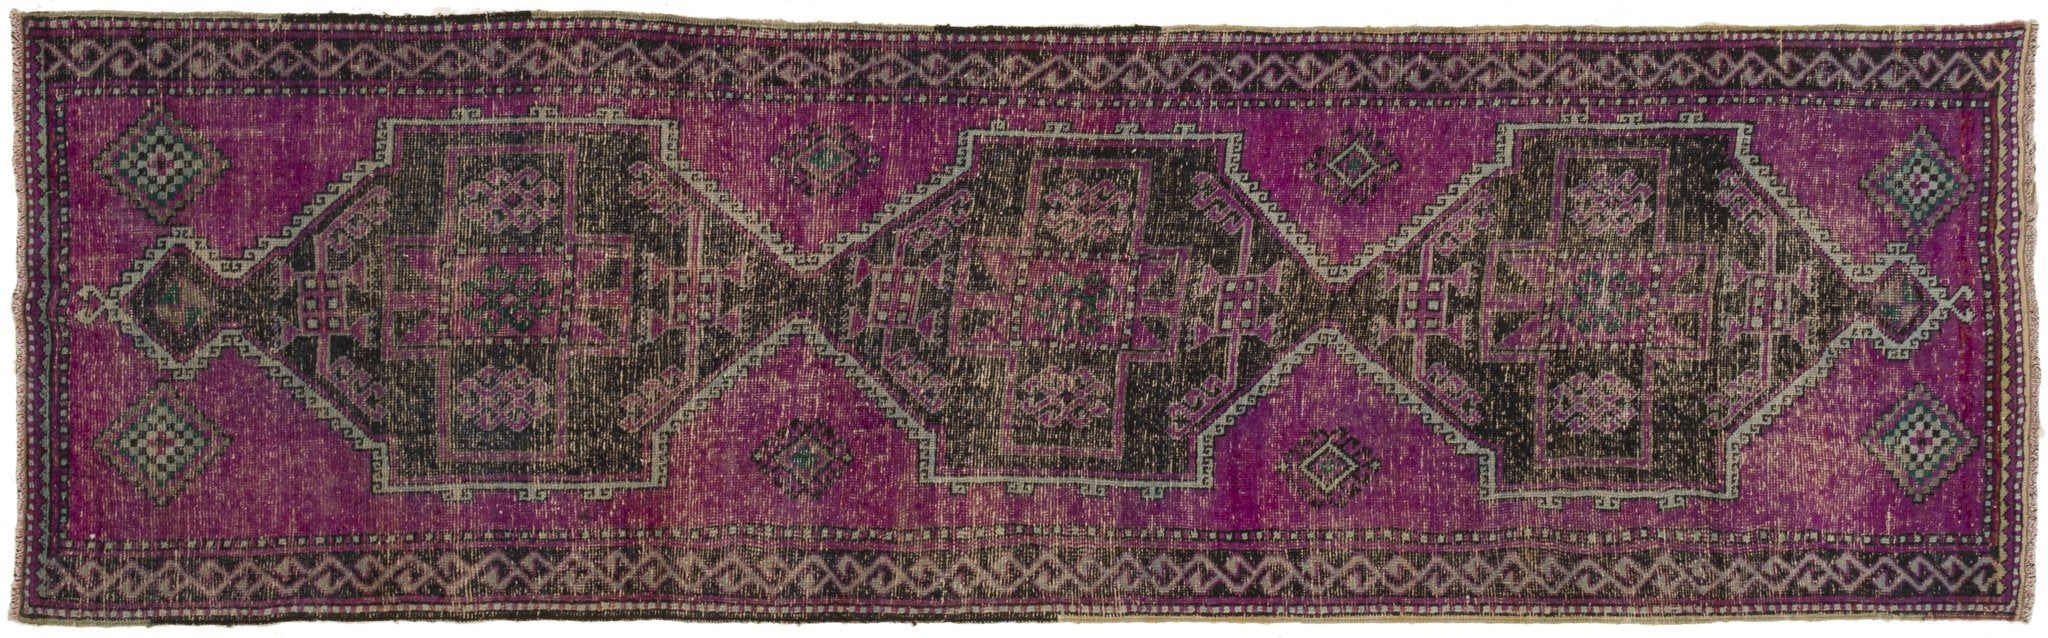 Vintage Turkish Runner Rug Andro